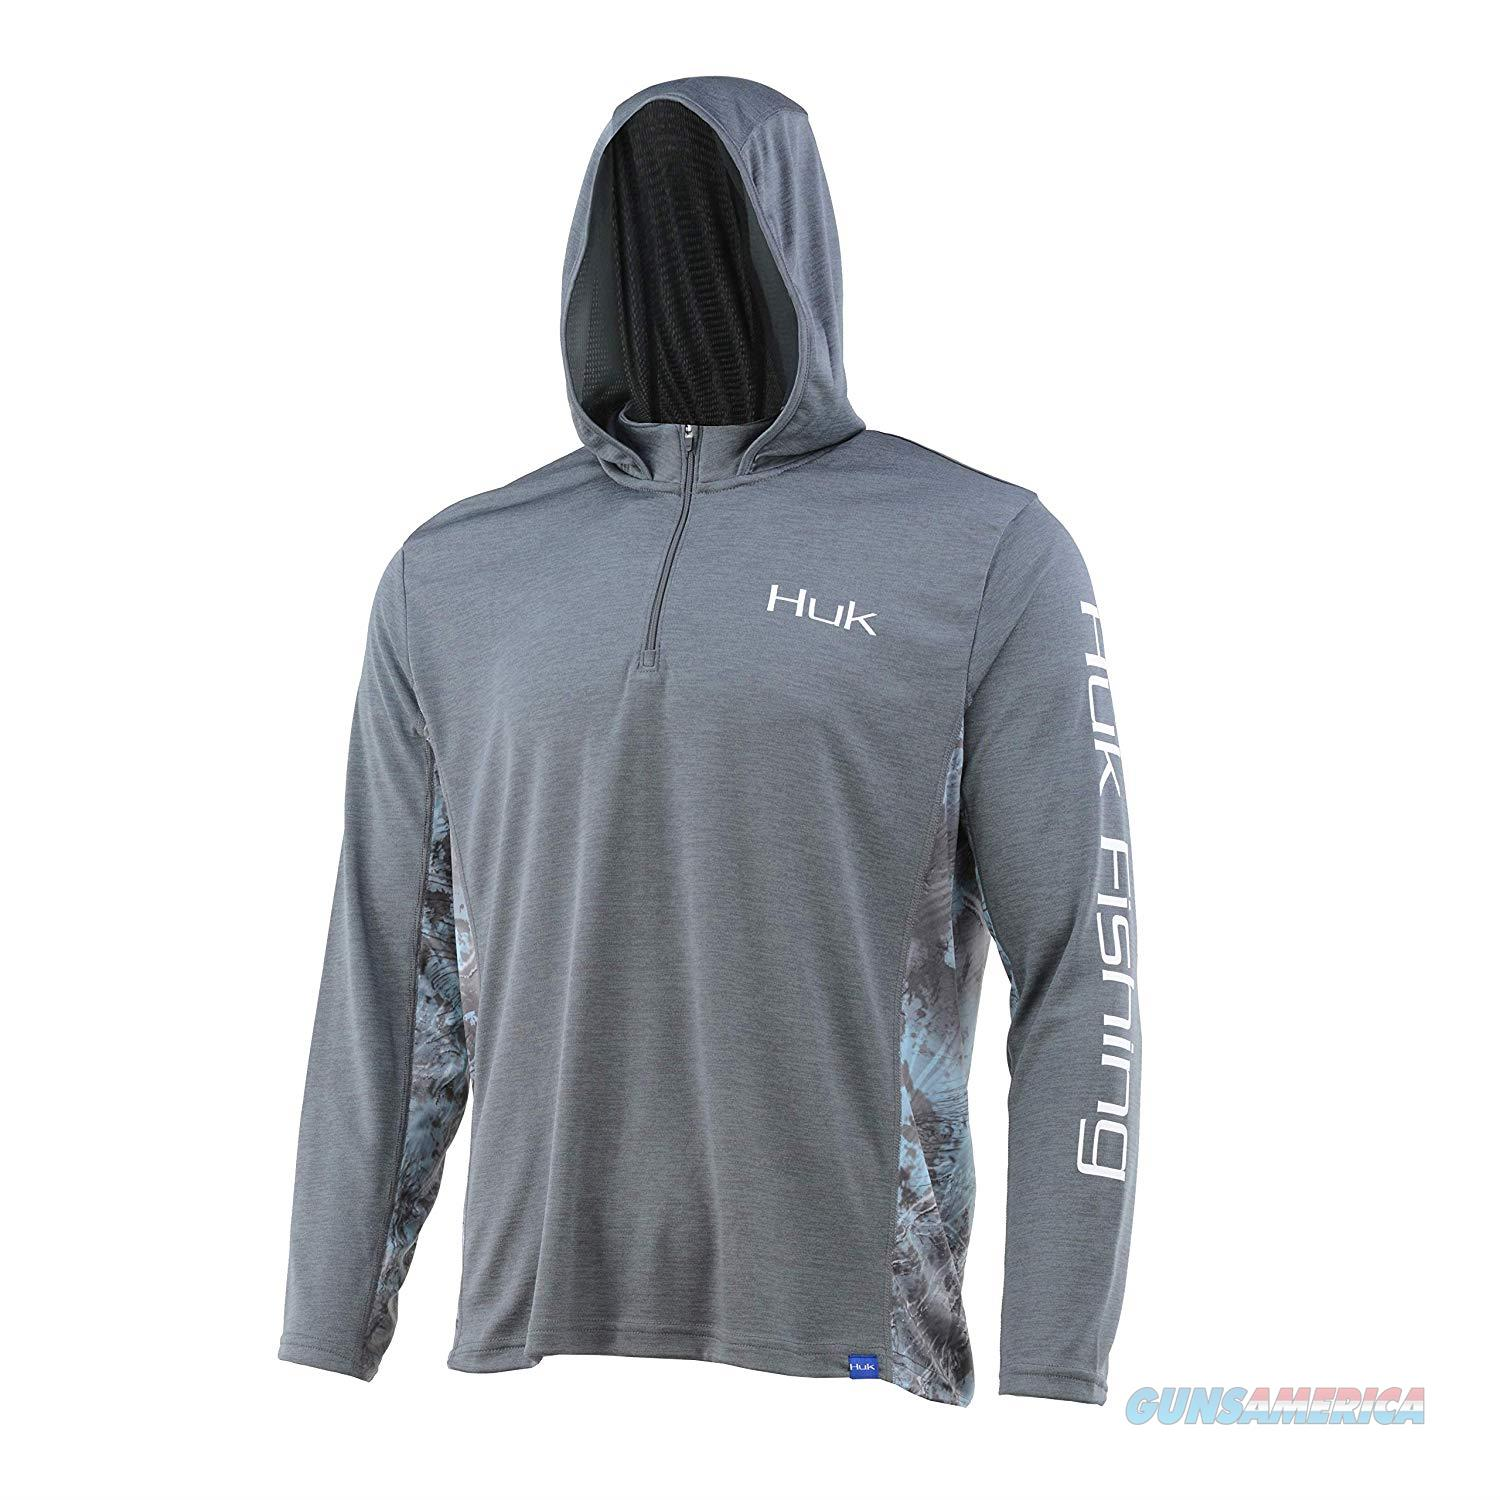 Huk Cold Weather Icon Hoodie Grey LG  Non-Guns > Hunting Clothing and Equipment > Clothing > Shirts